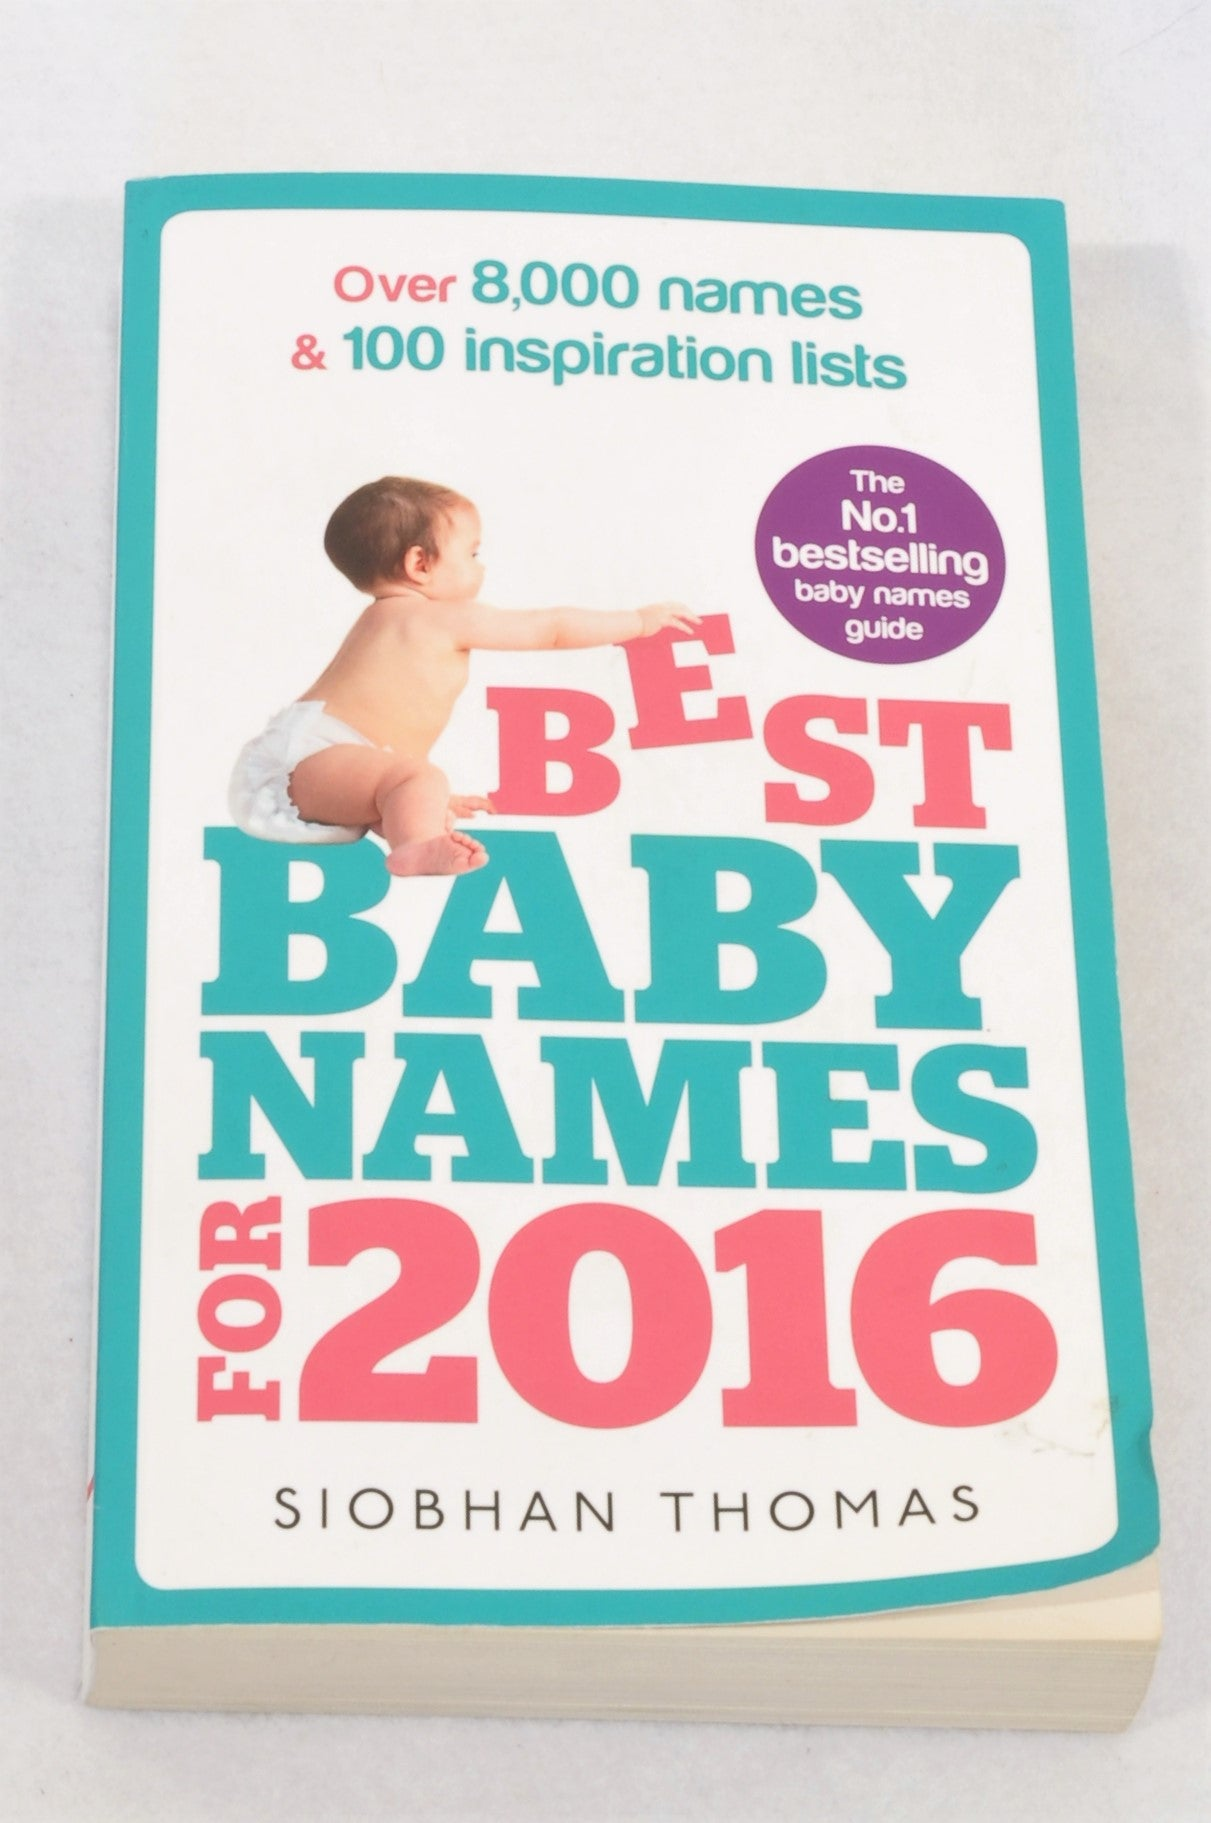 Unbranded Best Baby Names For 2016 Parenting Book Unisex N-B